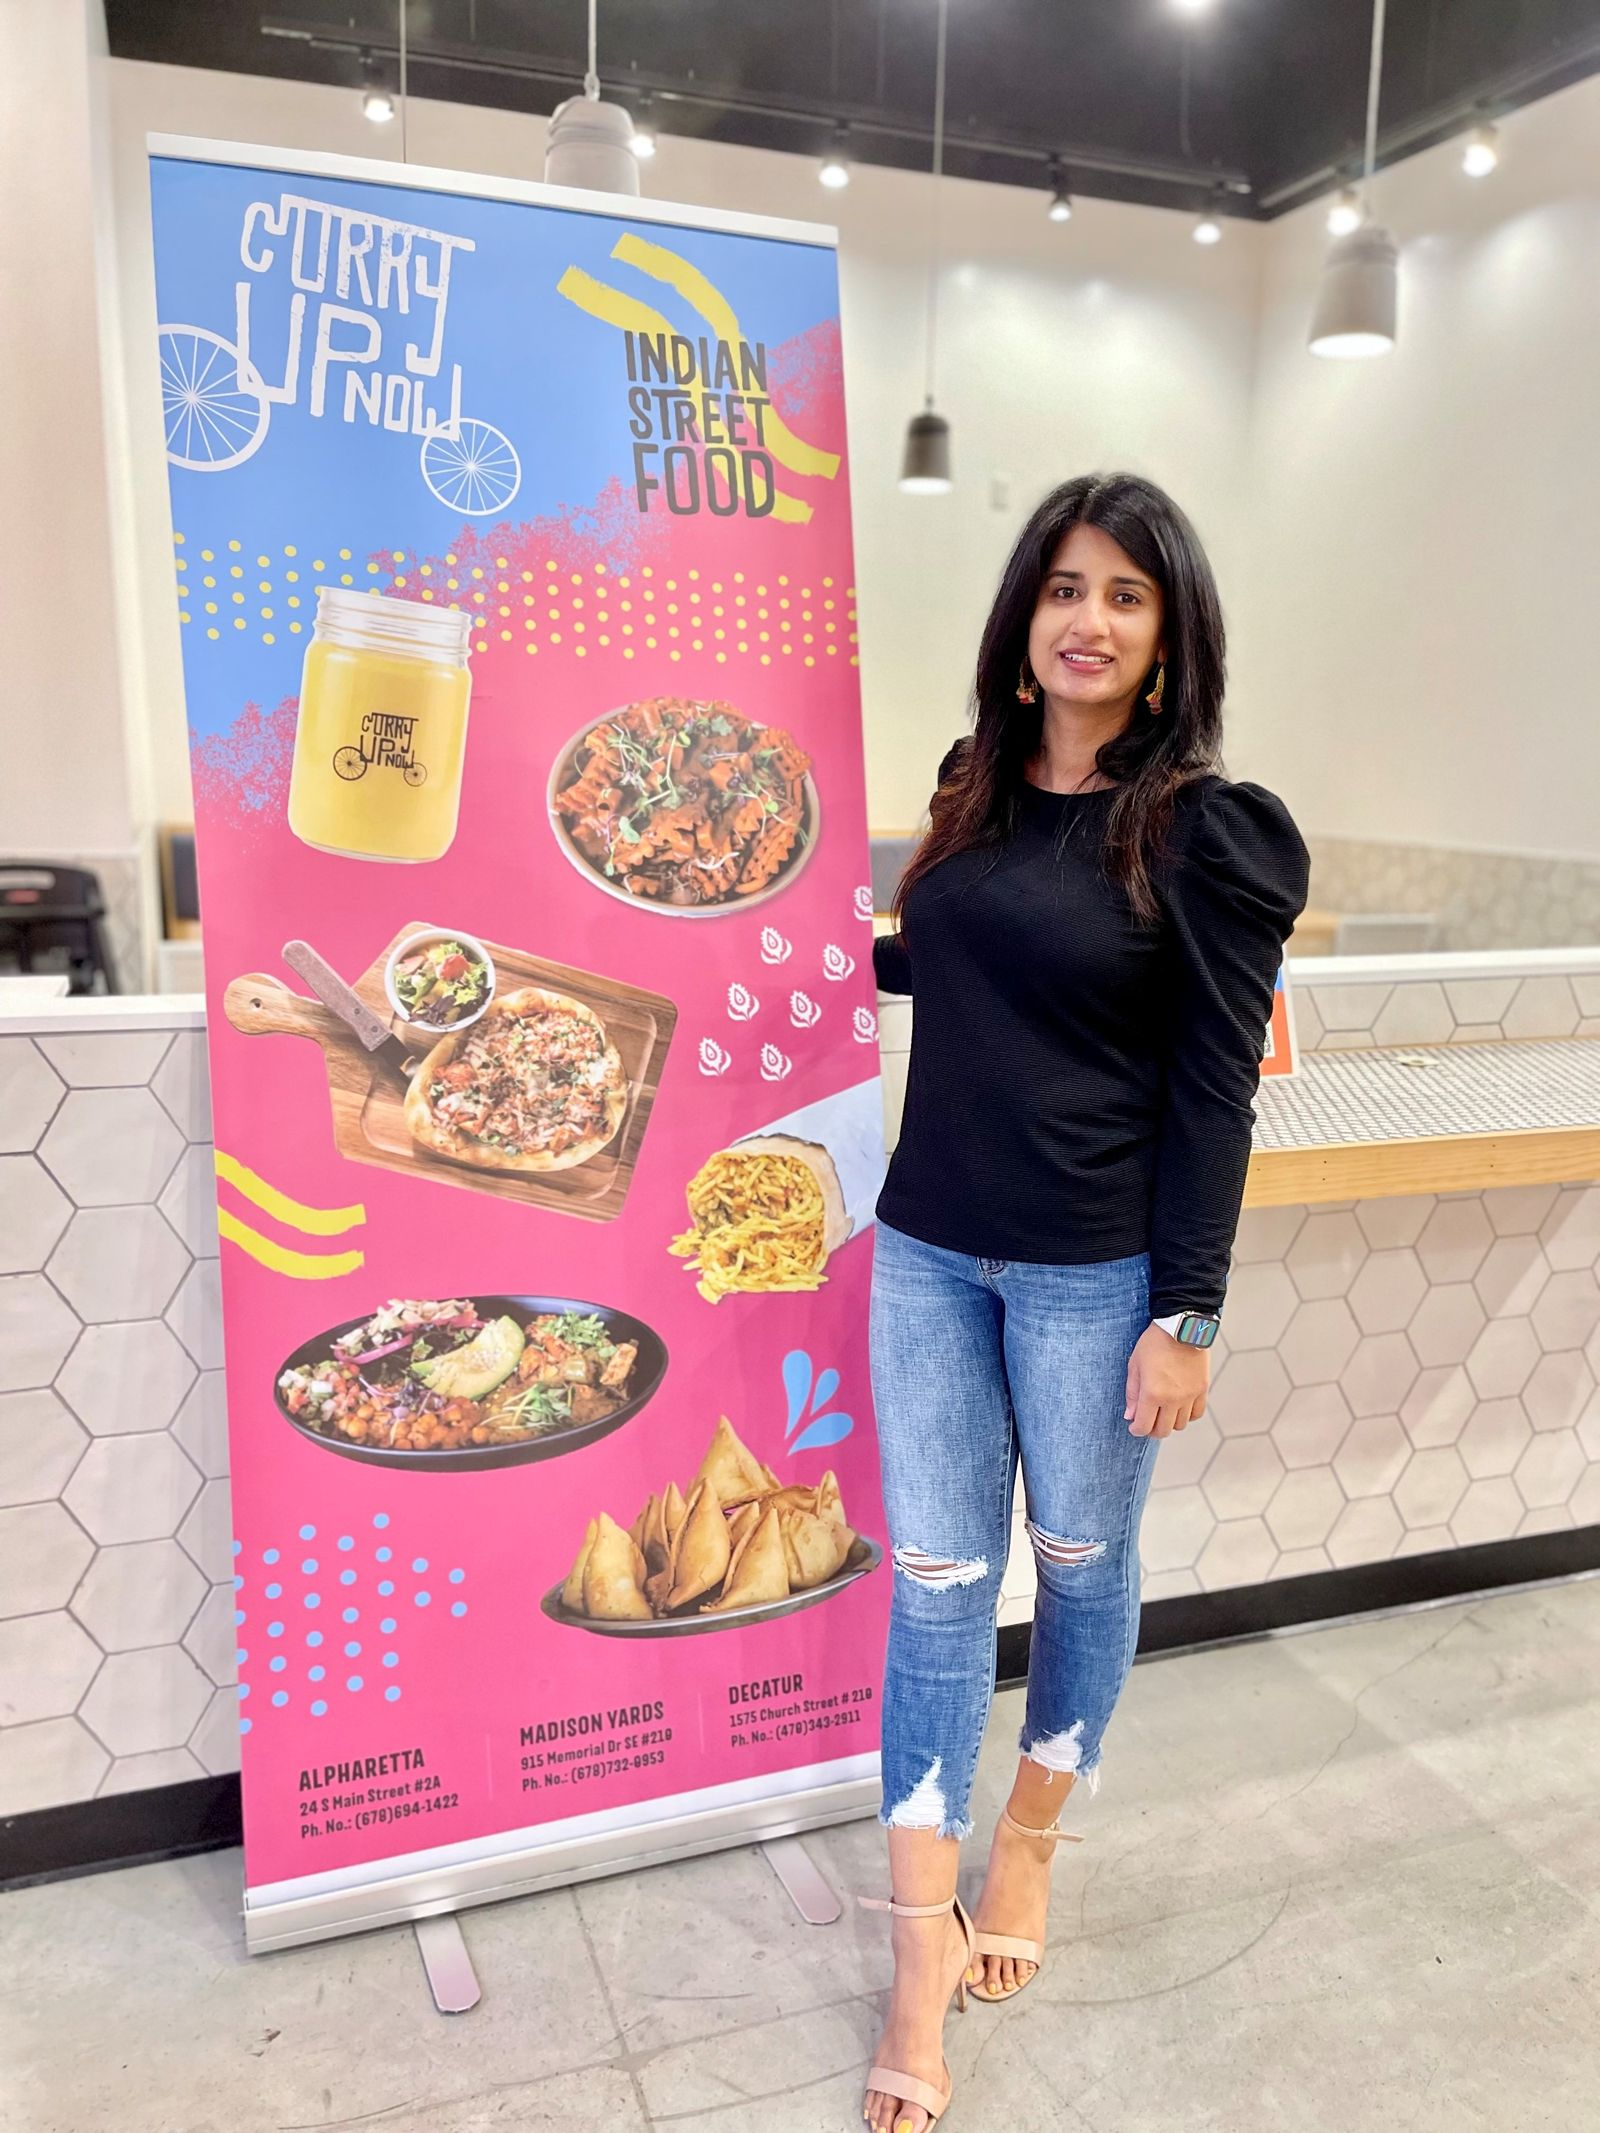 Curry Up Now Dominates Southern Expansion, Partners With Women-Owned Franchisee To Secure Third Franchise Deal in Texas